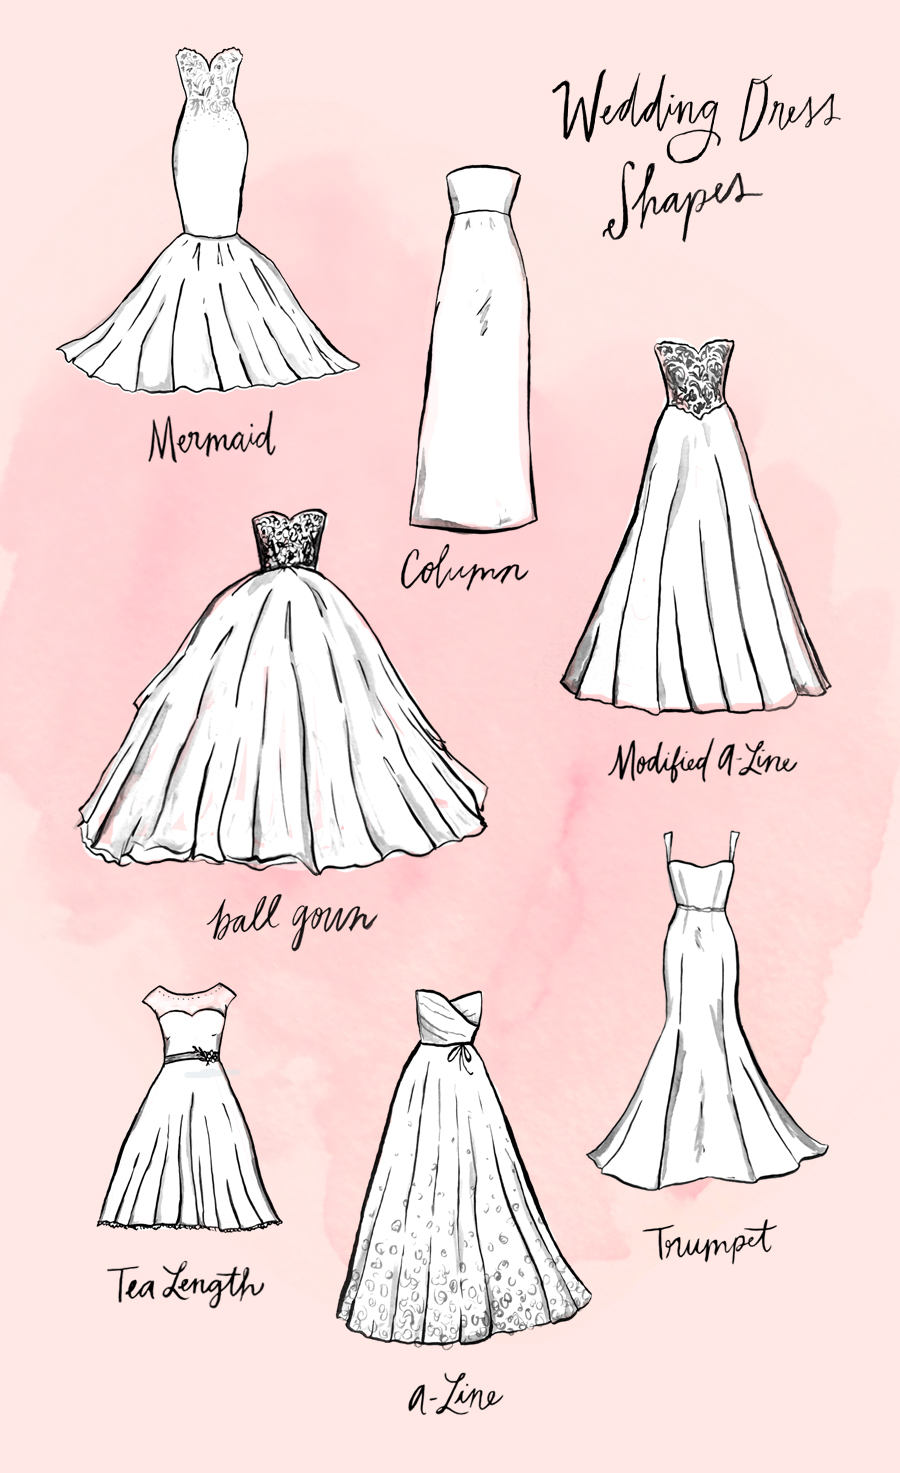 PS_WeddingDresses_Pinterest.jpg